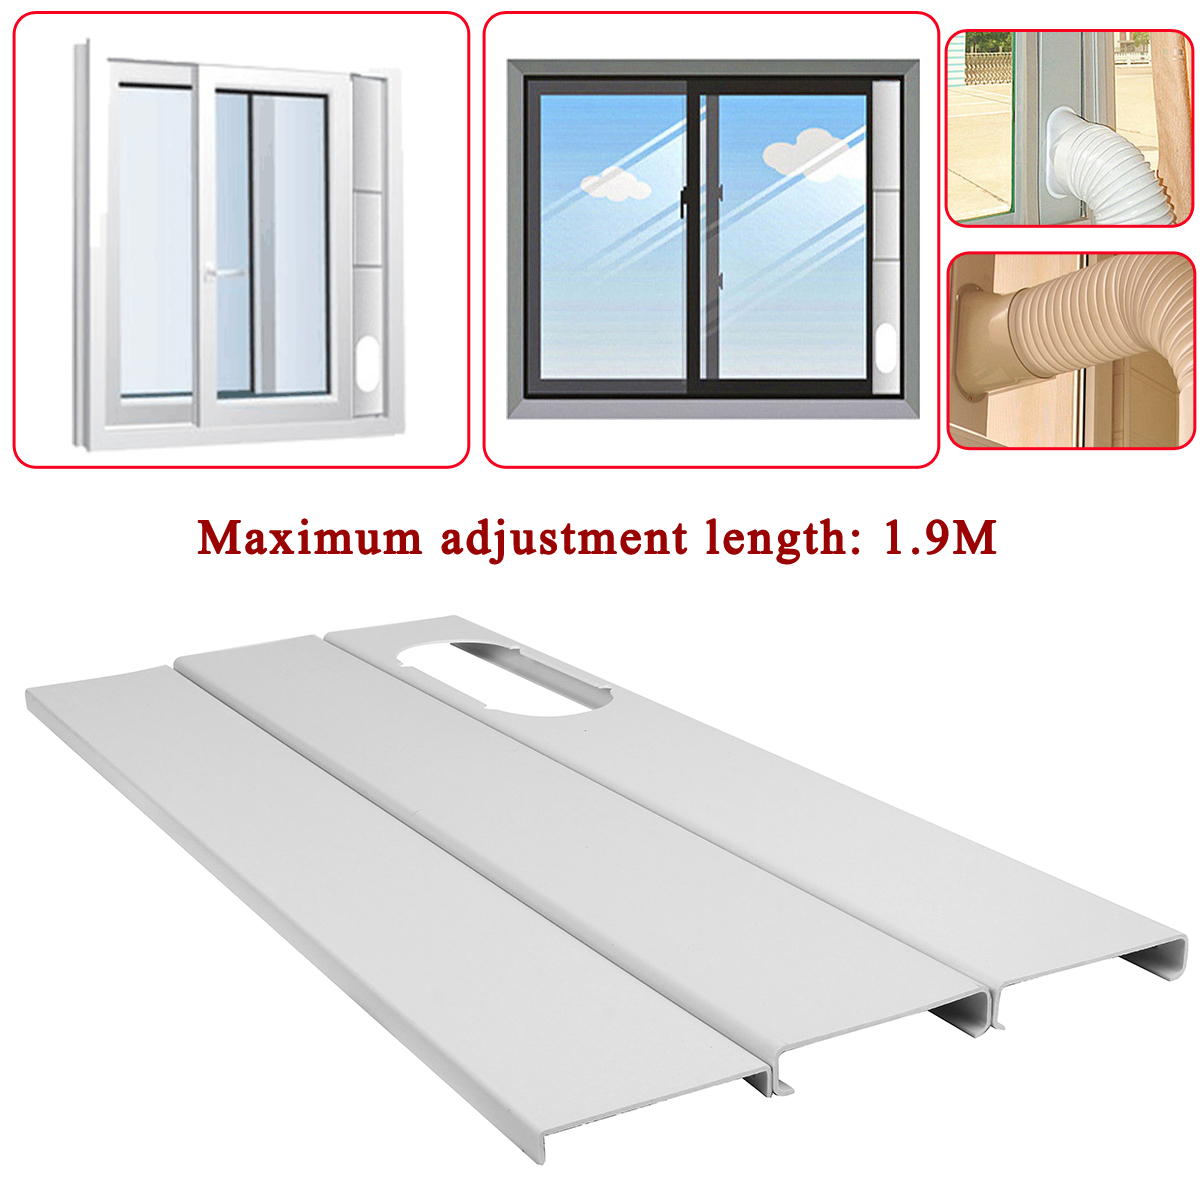 Air Lock Window Seal Plate 400cm Portable for Living Room Air Conditioner KZ